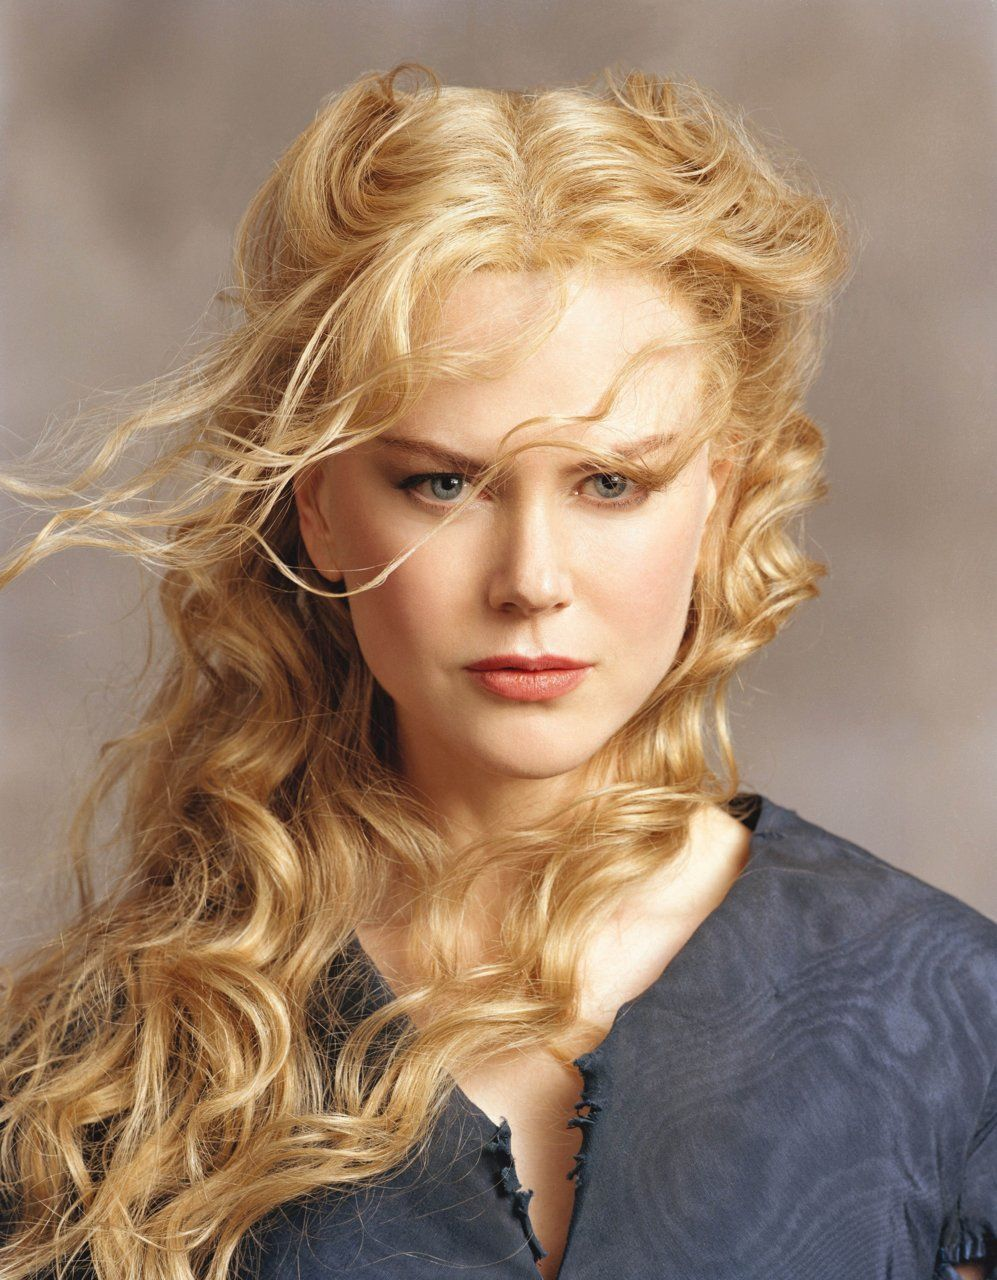 Nicole Kidman Strawberry Blonde Hair Colour And Waves I Like This